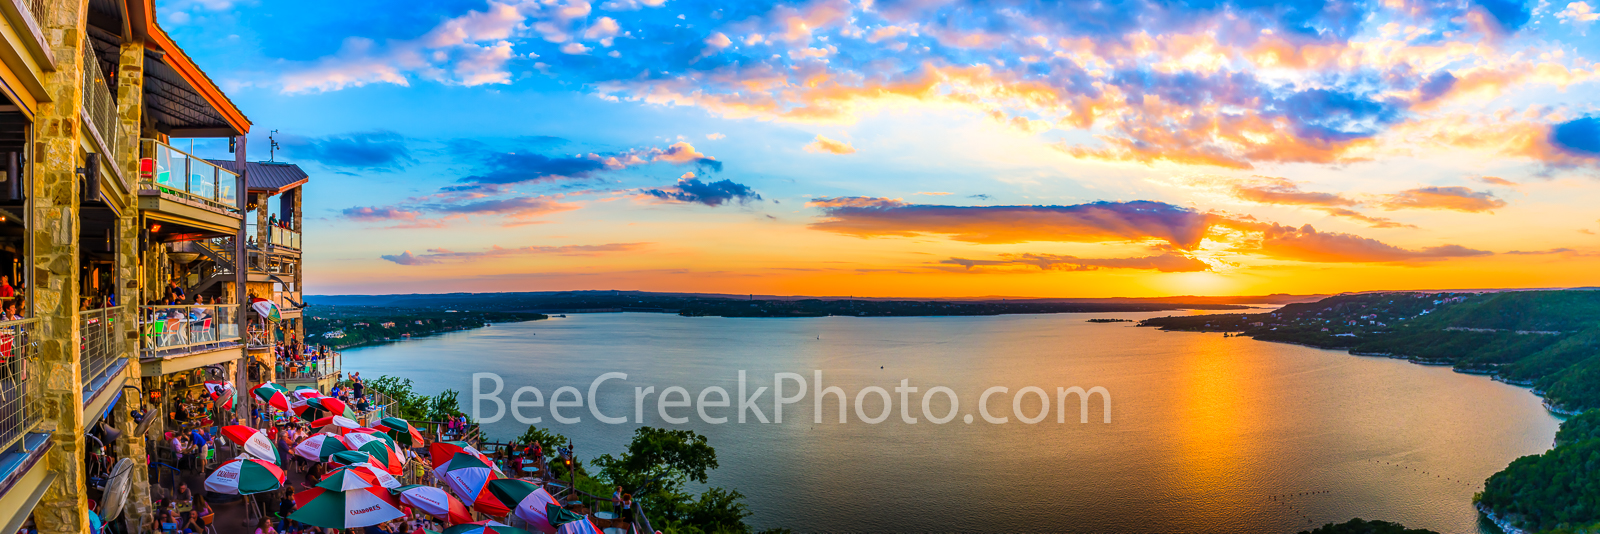 Oasis Sunset Panorama - Austin Lake Travis -  We have taken many images of the Oasis sunsets at Lake Travis outside of Austin...